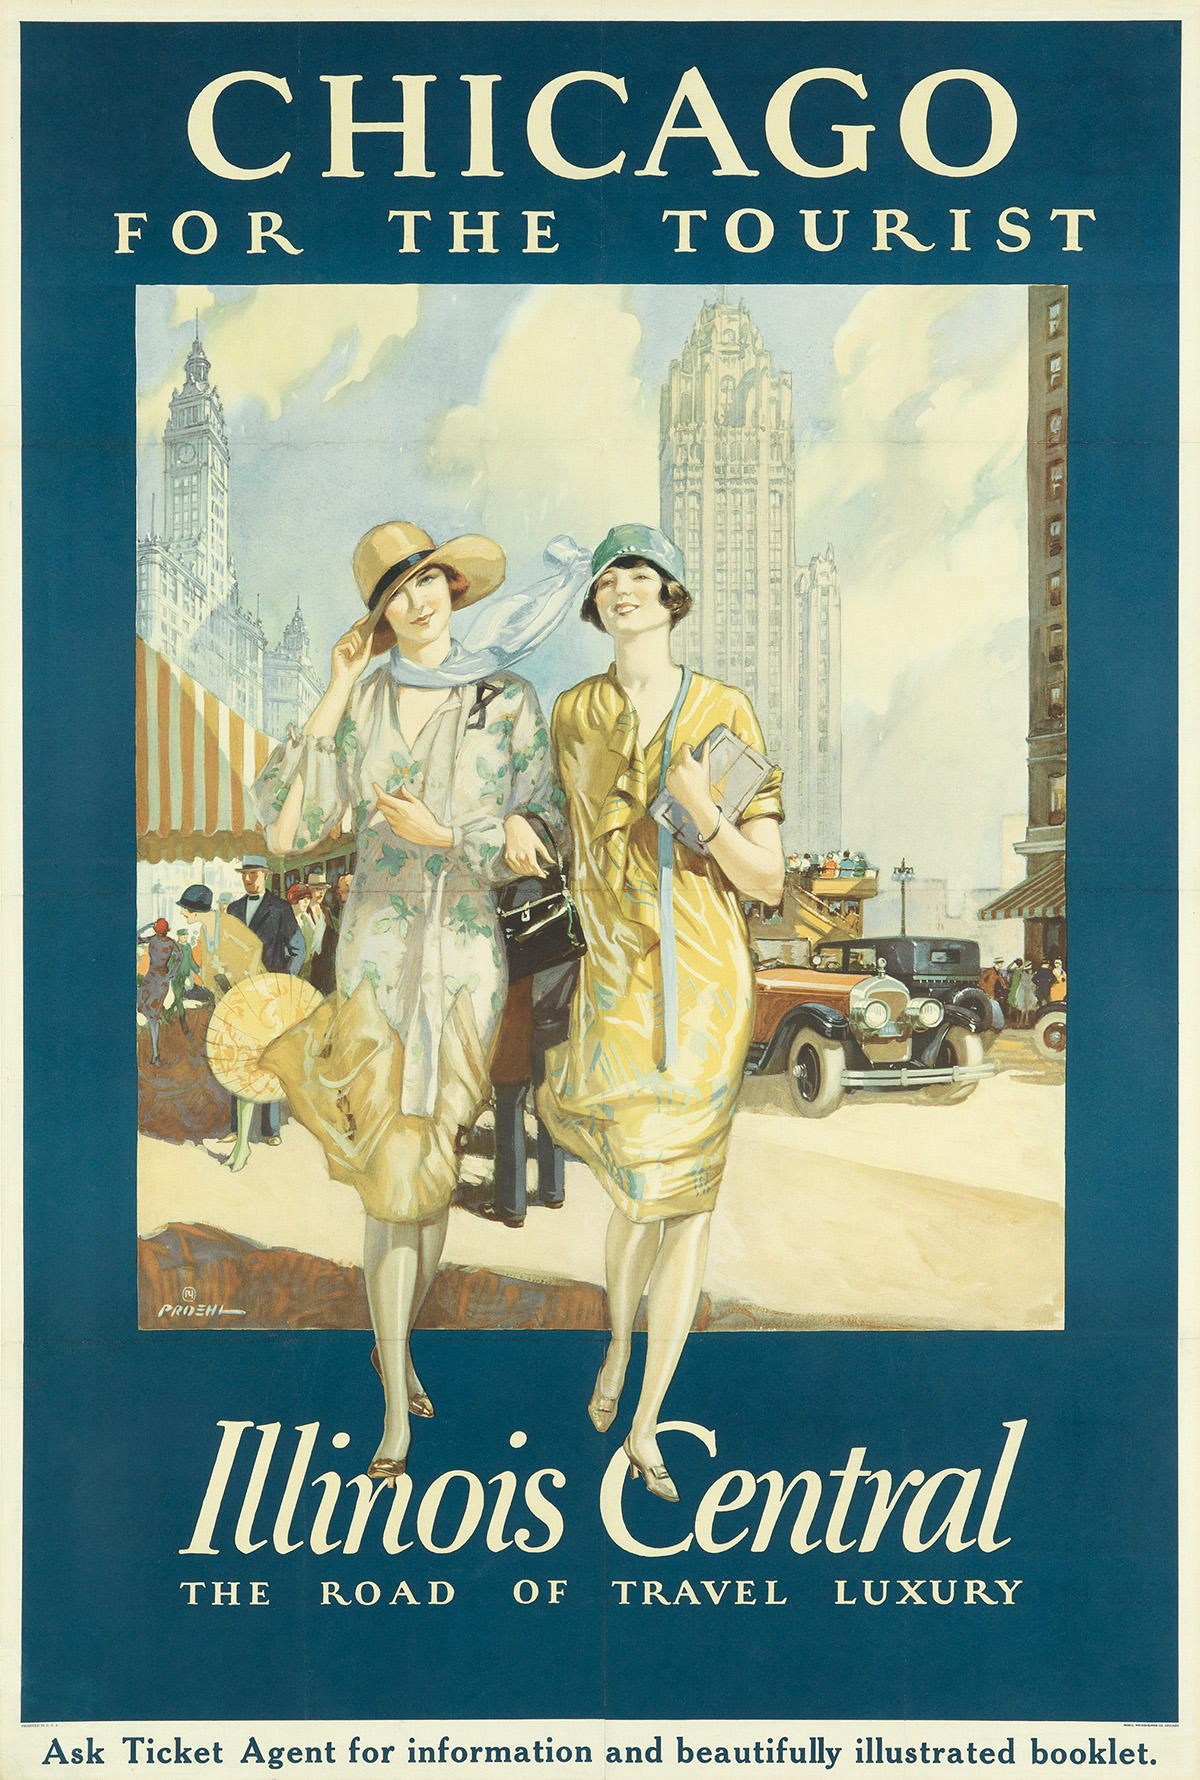 PAUL-PROEHL-(1887-1965)-CHICAGO-FOR-THE-TOURIST--ILLINOIS-CE